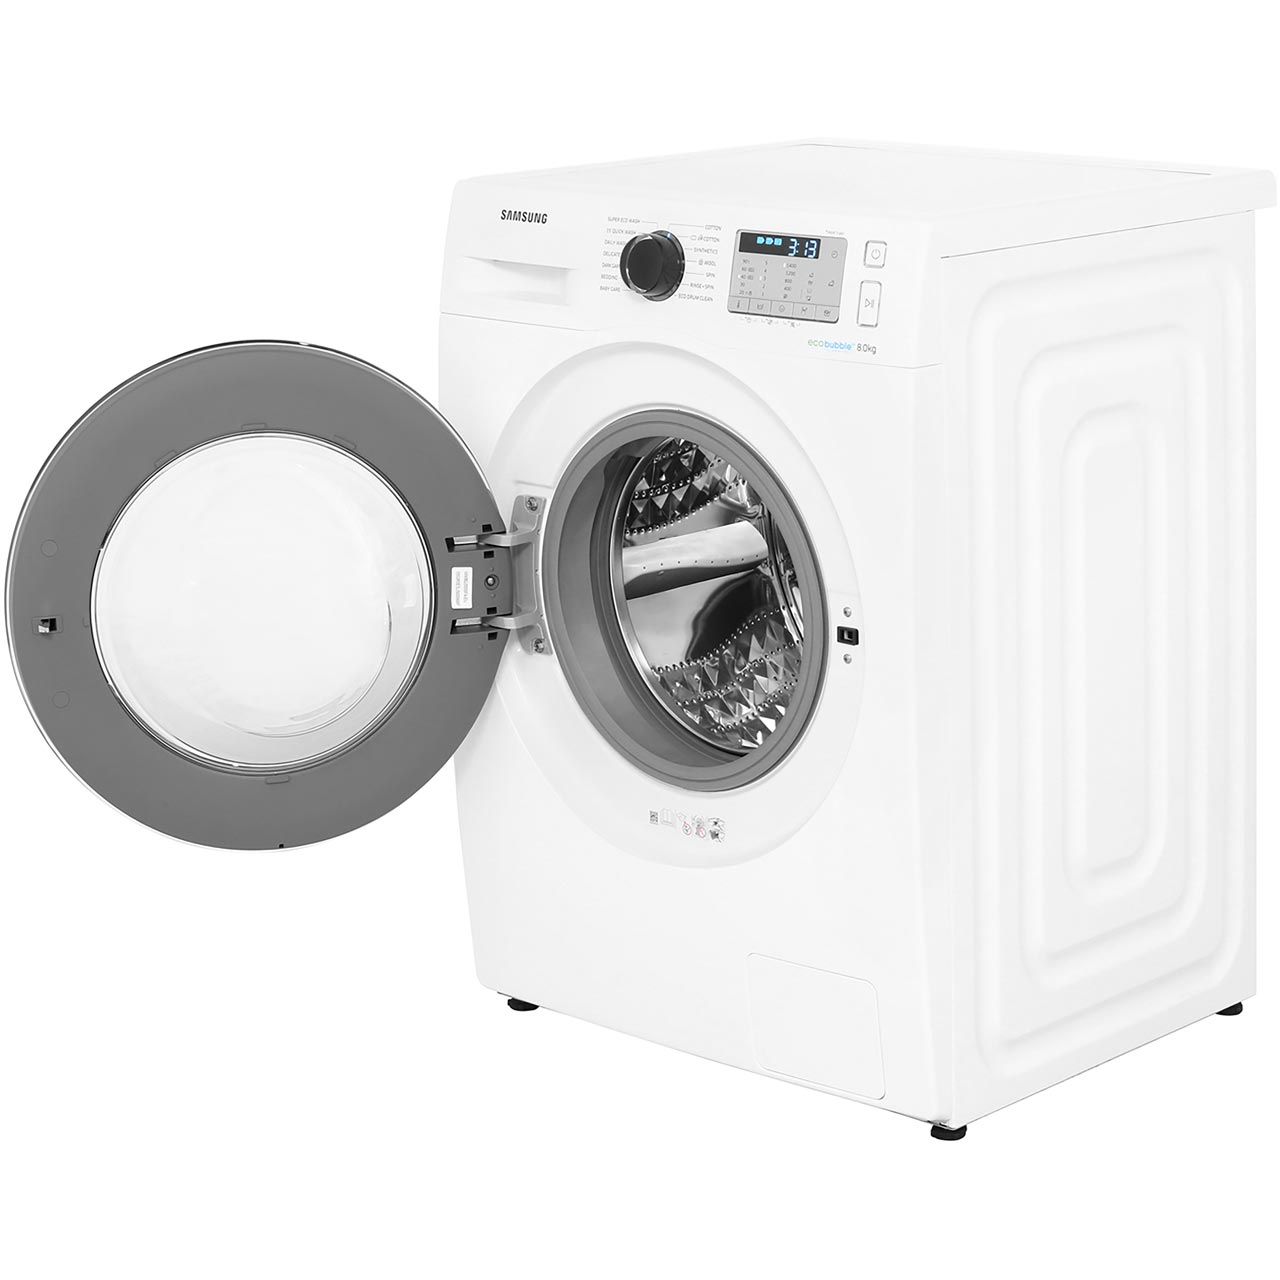 Boots Kitchen Appliances | Washing Machines, Fridges & More